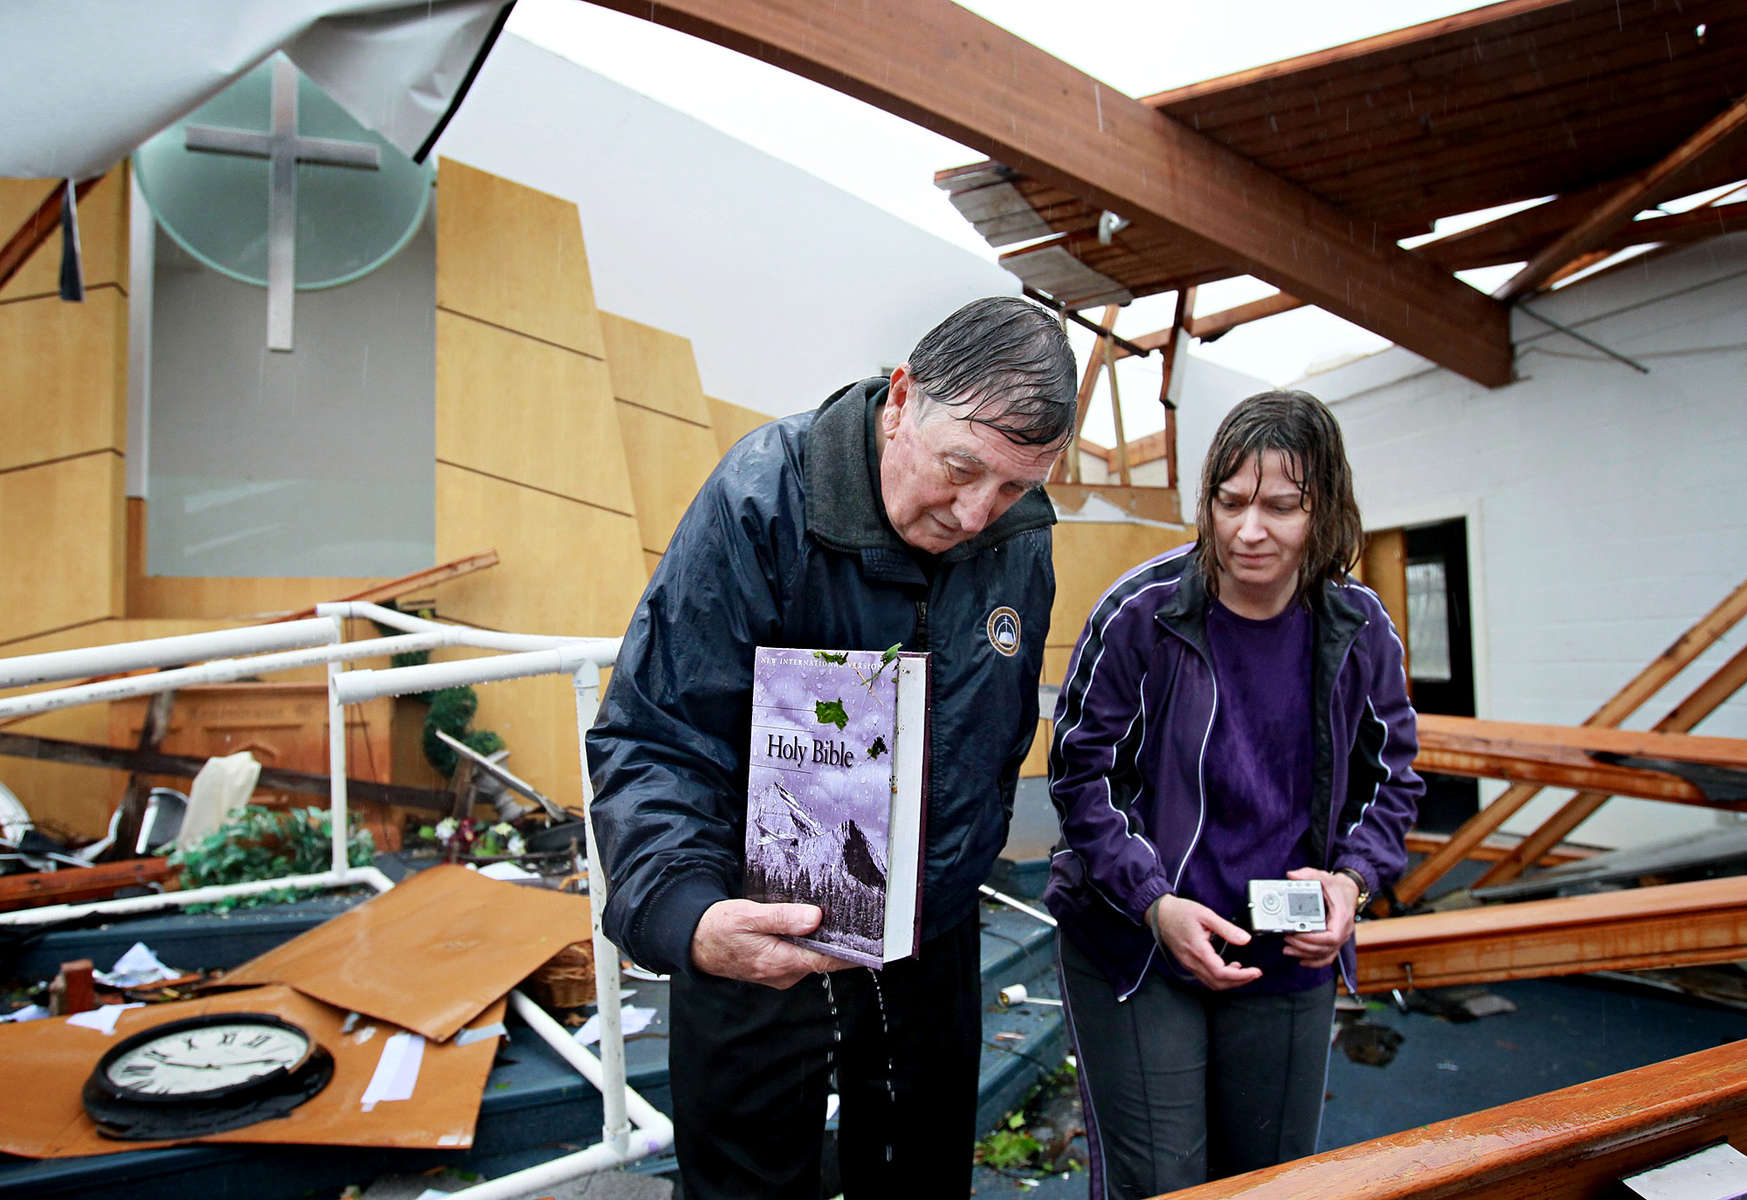 Saturday April 23, 2011--Larry Doggett, left, and his daughter Joni Bellinger salvage a bible from the debris in the sancuary of the Ferguson Christian Church after a tornado ripped the roof off the church on Friday night.  {quote}We had plans for Easter and God had other plans{quote} said Bellinger.  Thirty-one people who were watching Passion of the Christ at the church took shelter in the basement, hiding under tables and in the bathrooms, as the tornado slammed into the church.  No one was seriously hurt in the incident.  David Carson     dcarson@post-dispatch.com